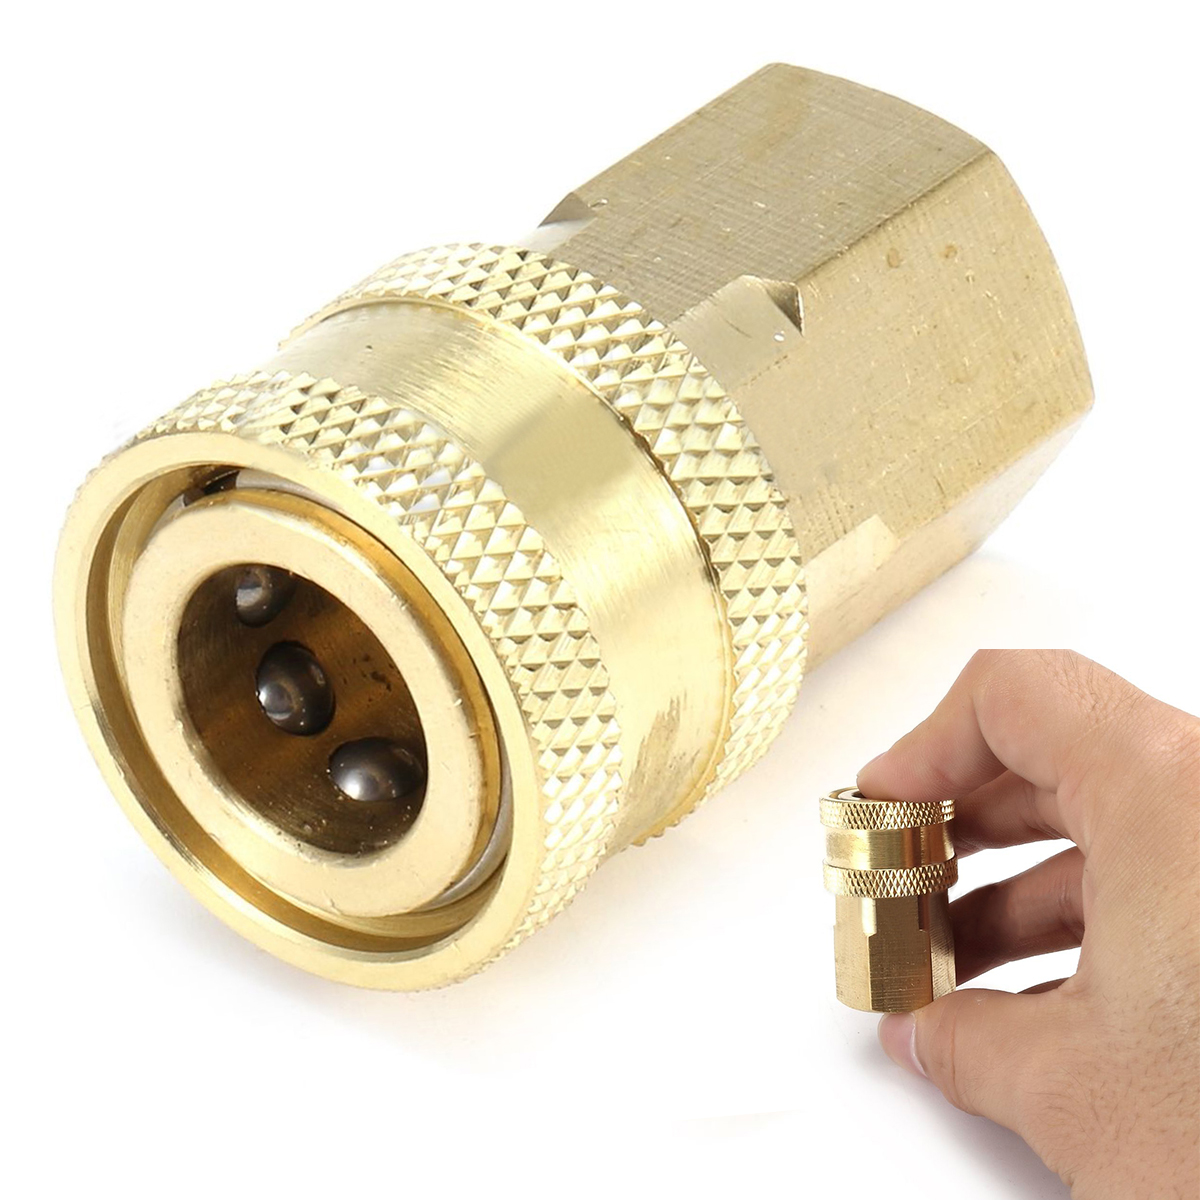 1pc 1/4 NPT Brass Female Quick Connect Coupler for Pressure Washer 15mm Inner Diameter Mayitr Durable Pipe Thread Adapter 59 brass freon high pressure refrigerator of copper adapter connector female inner diameter 24mm to male 11mm